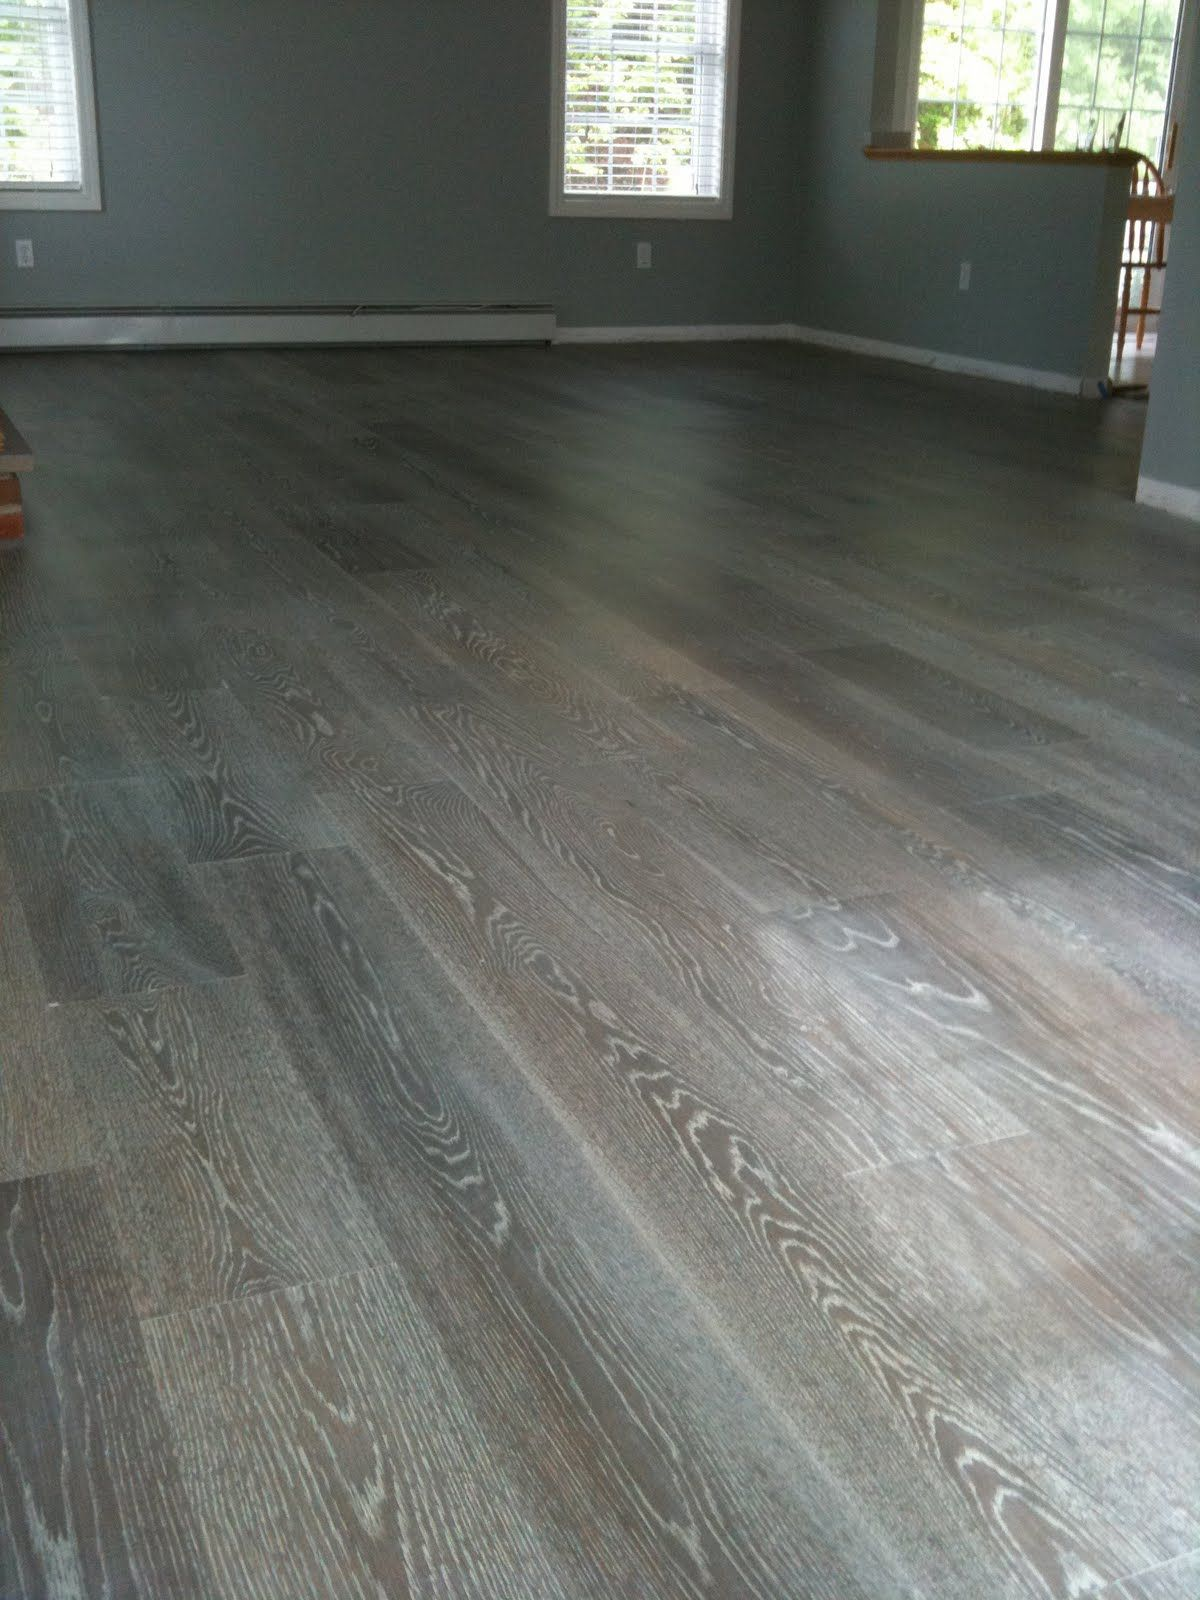 Grey Hardwood Floors True Wesson Interior Design Project Gray Hardwood Floors Grey Hardwood Floors Hardwood Floors House Flooring